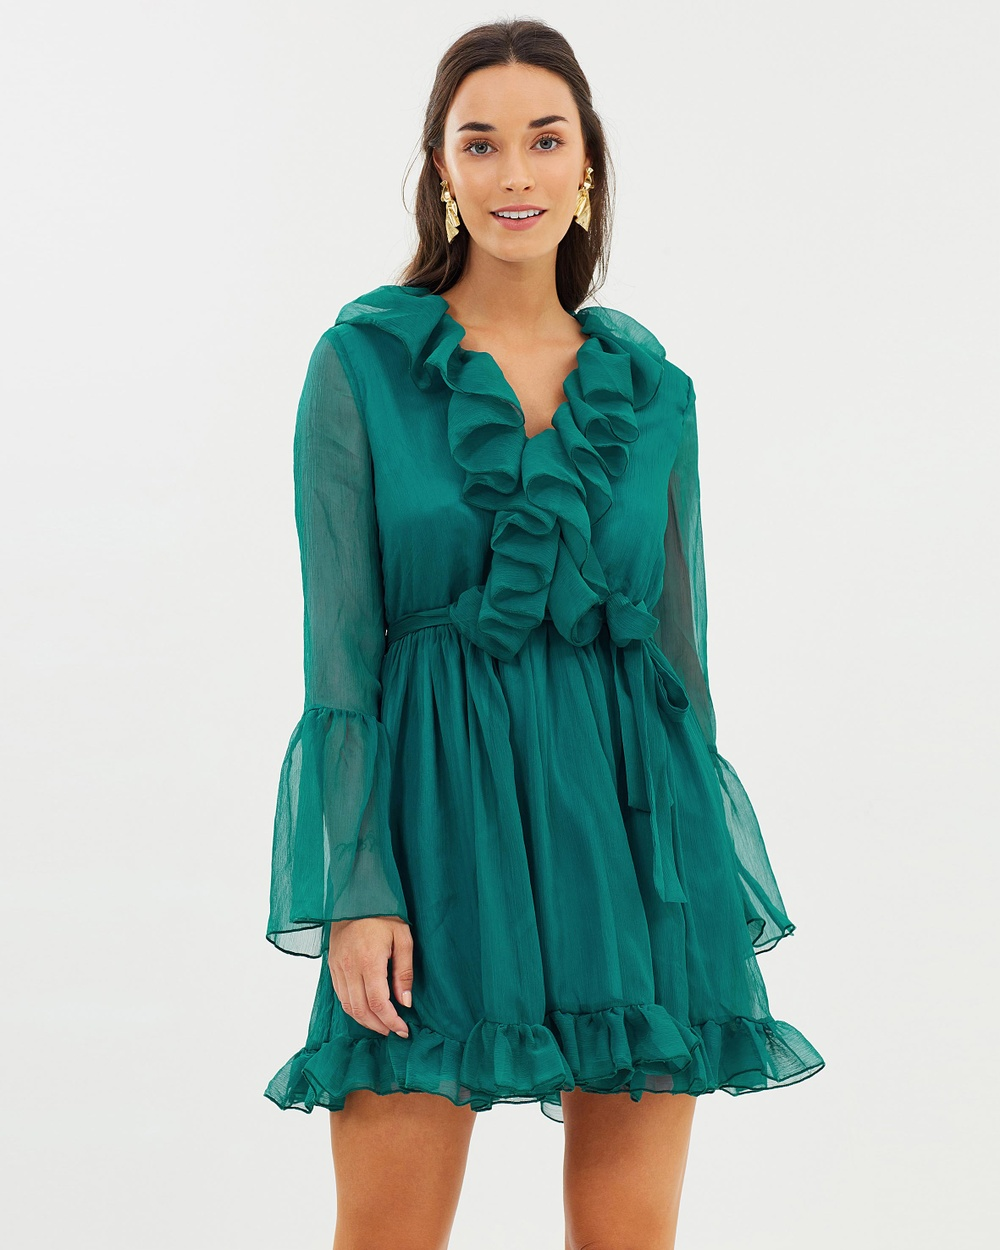 Mossman A Whisper of Fate Mini Dress Dresses Teal A Whisper of Fate Mini Dress